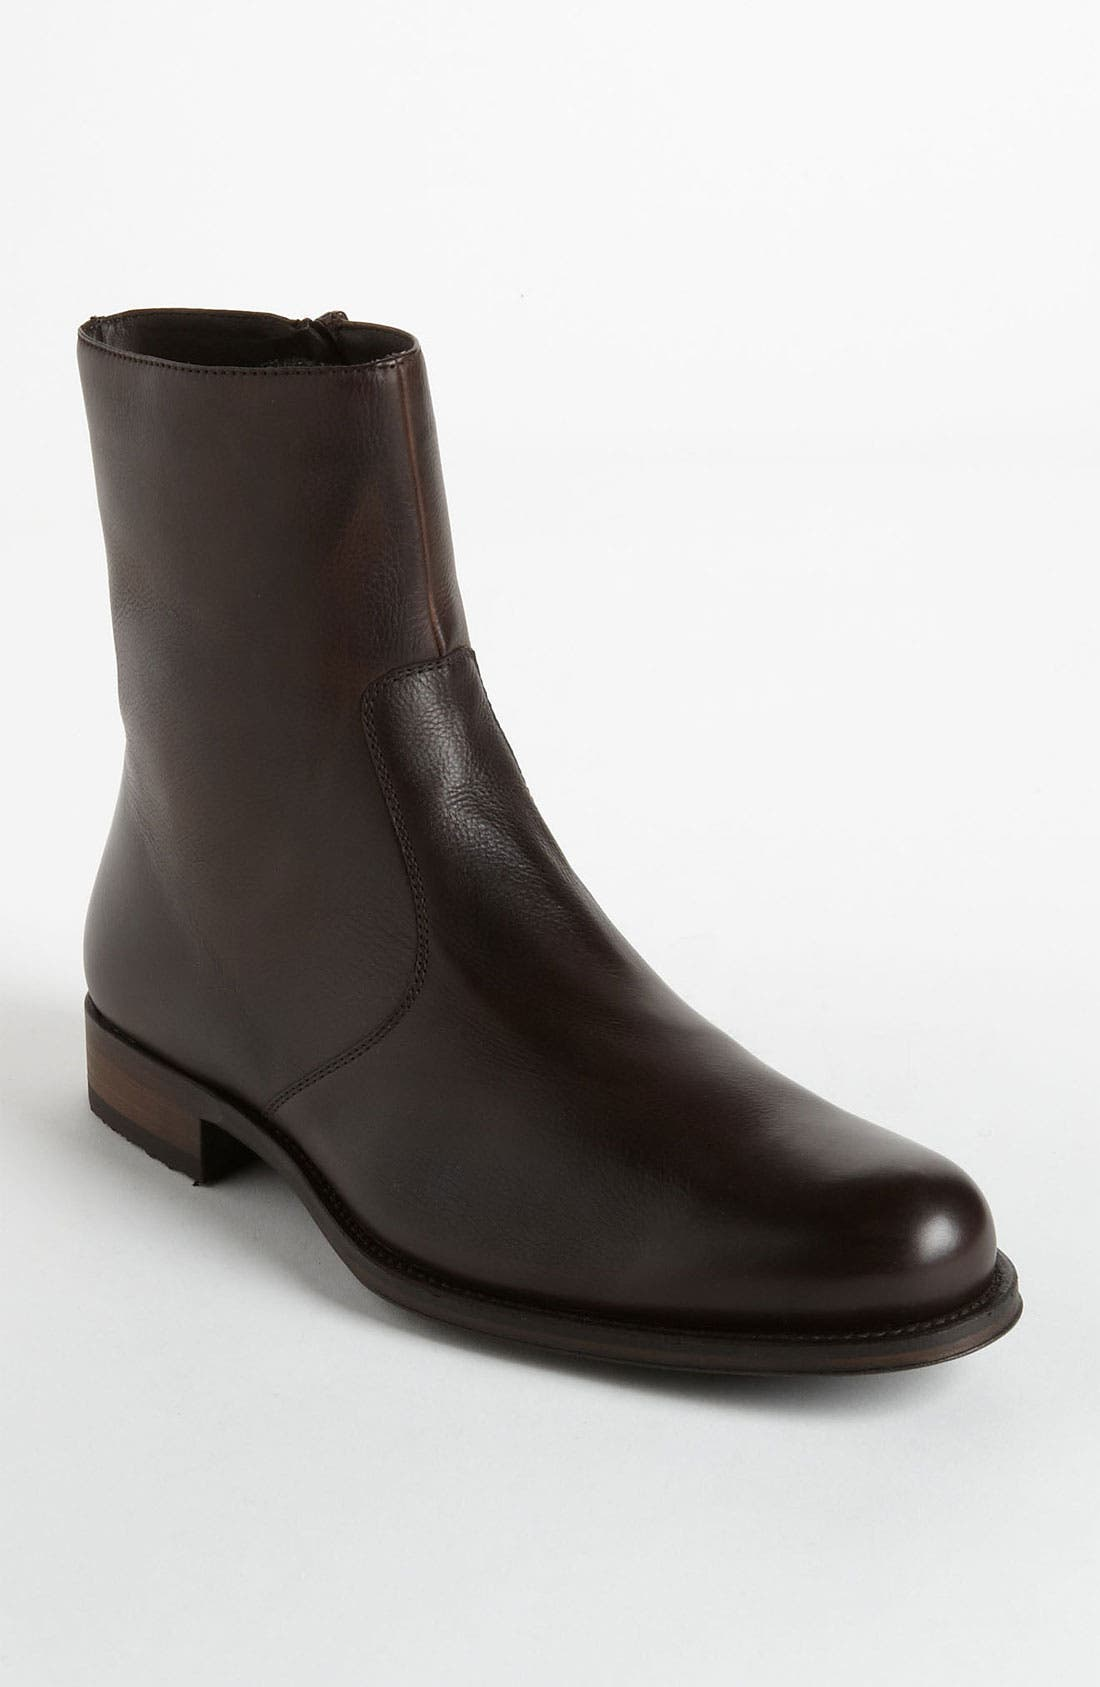 Alternate Image 1 Selected - Magnanni 'Sarto' Side Zip Boot